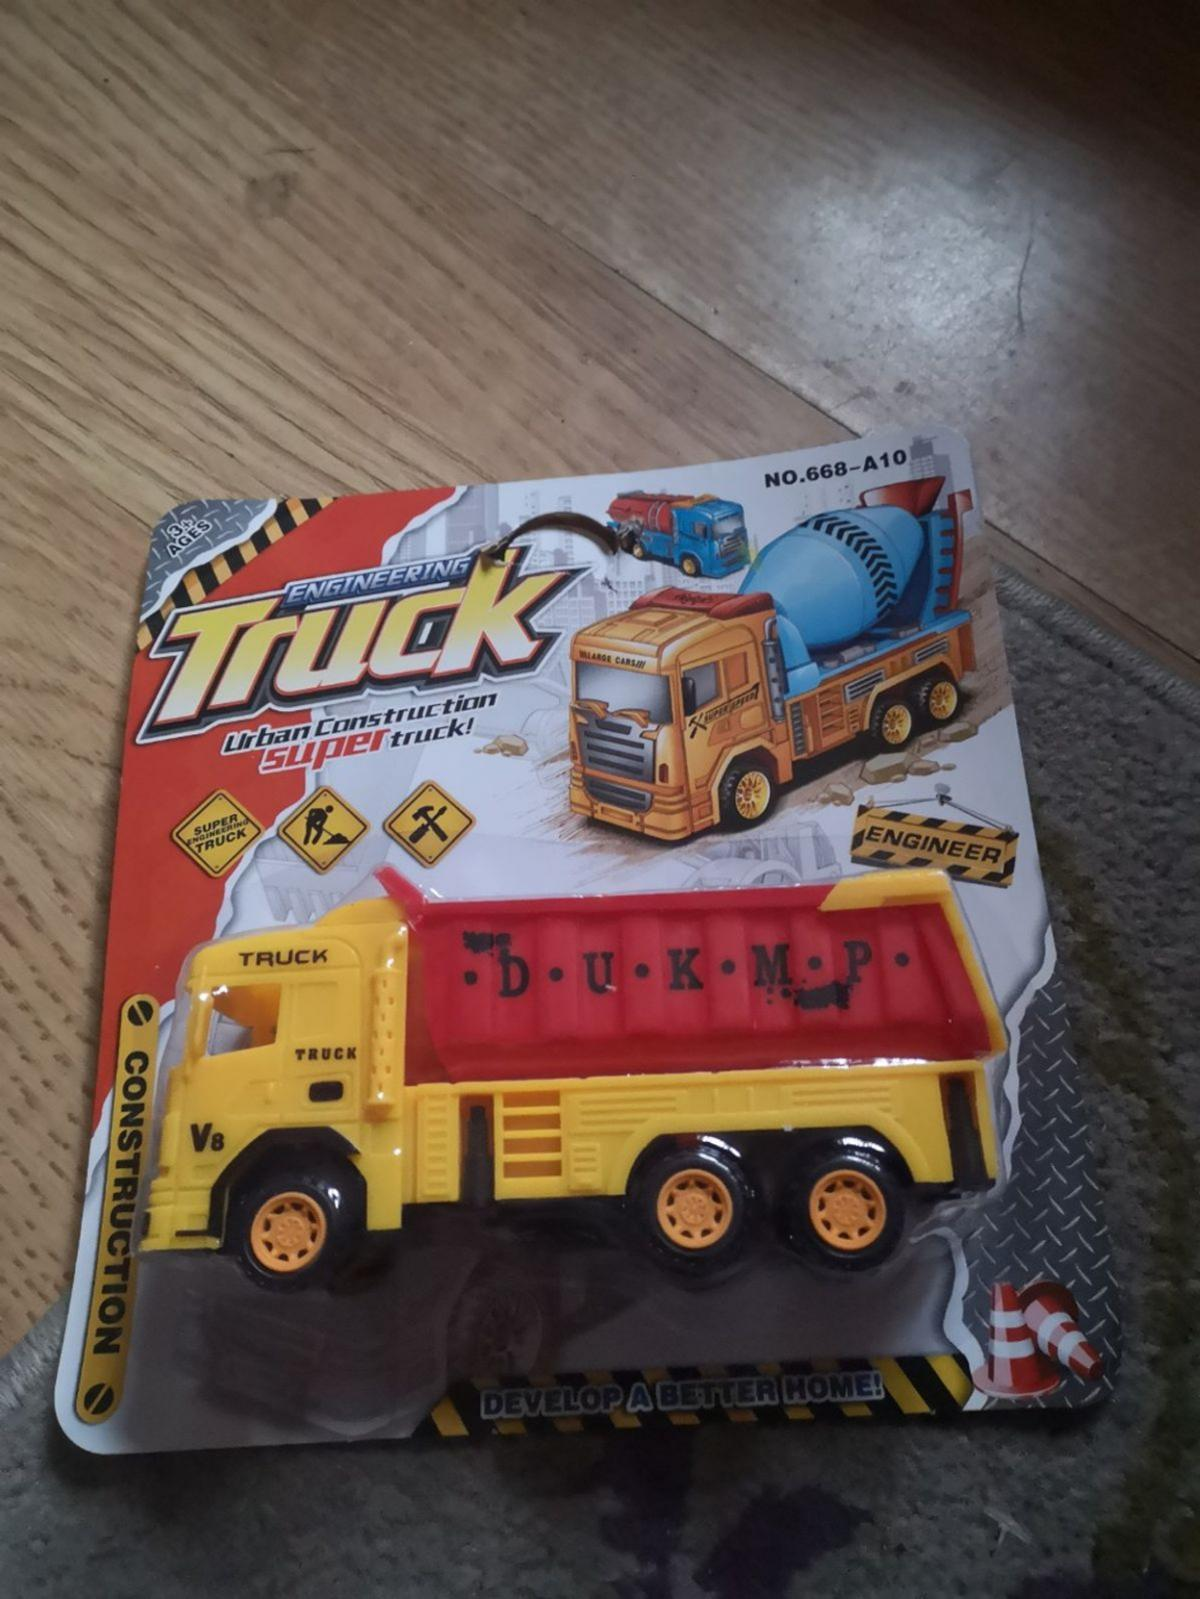 brand new sealed trucks .price is each